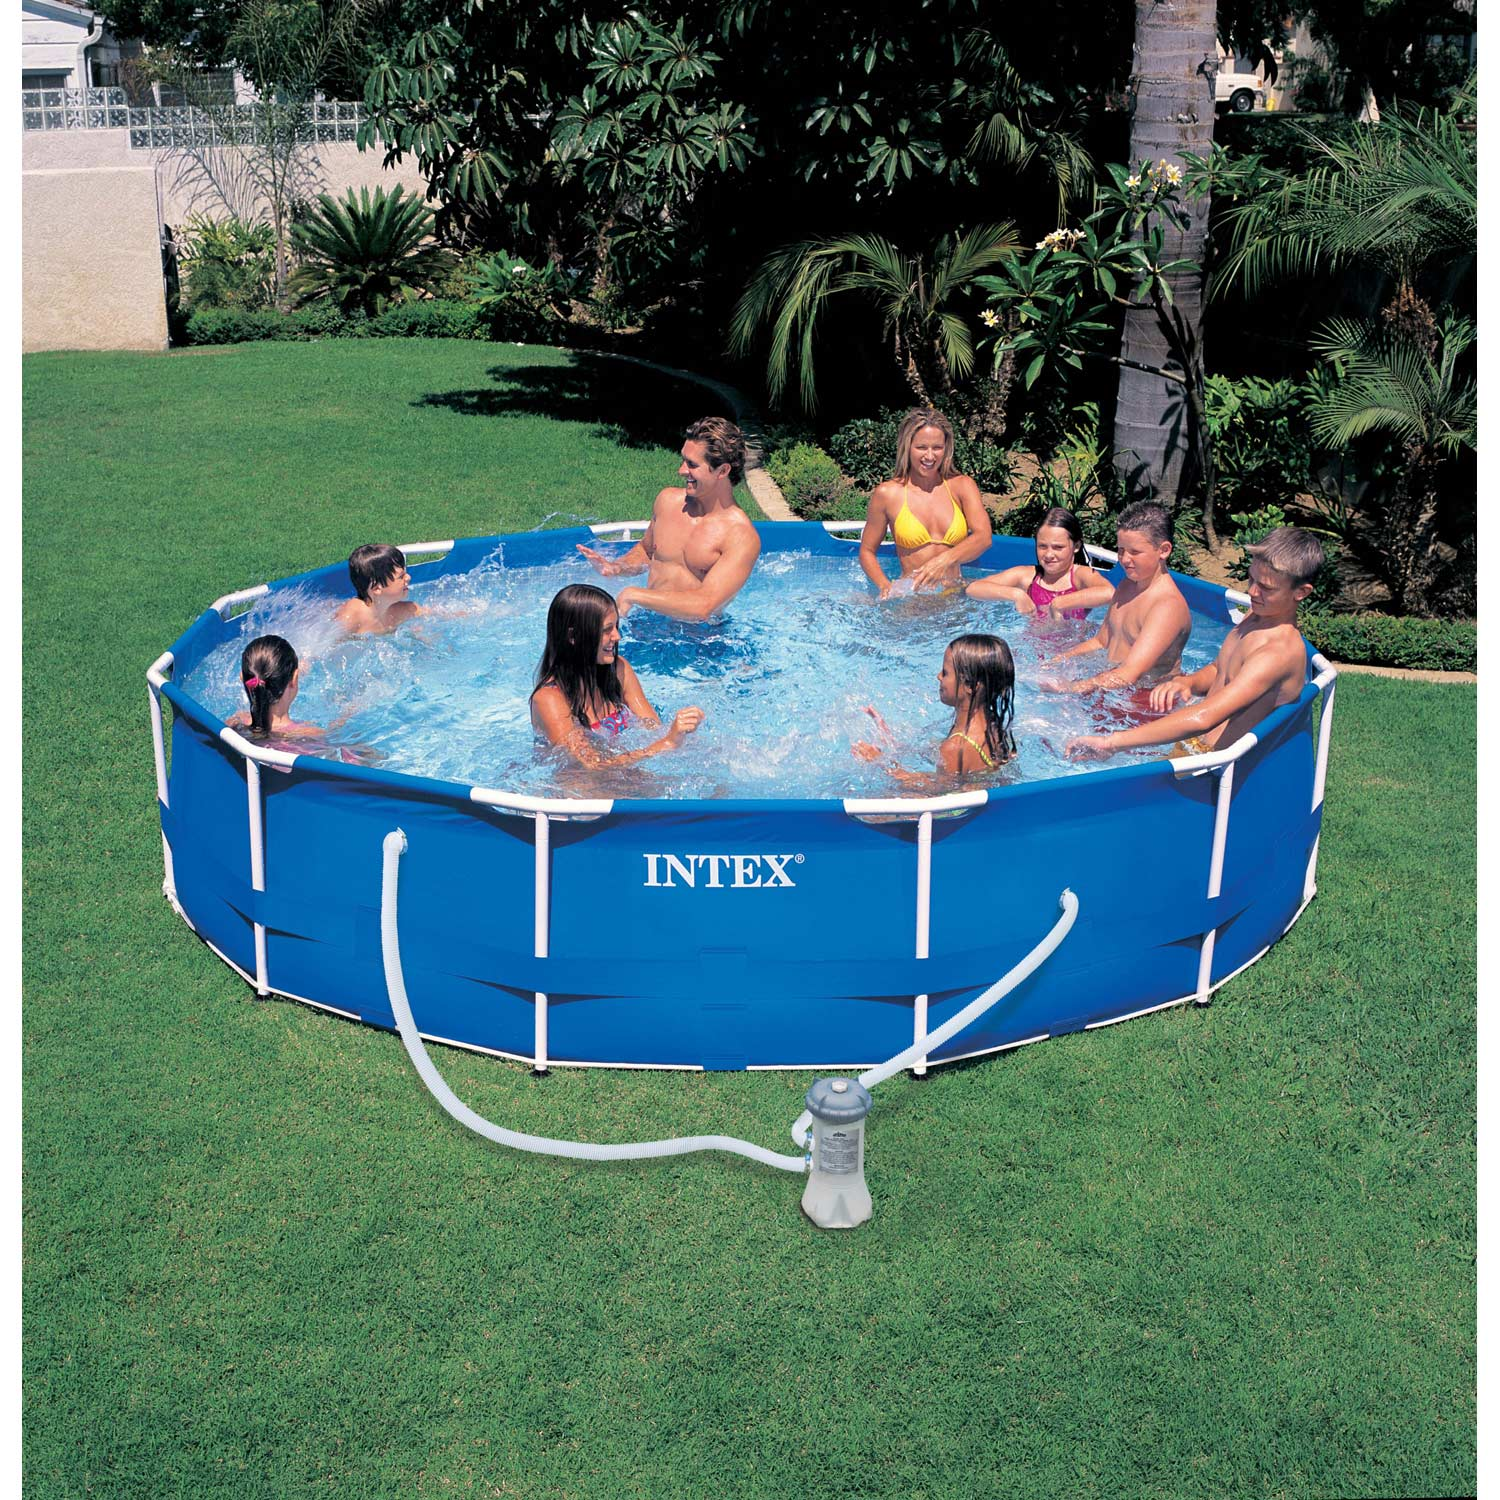 Piscine hors sol autoportante tubulaire metal frame intex for Tole piscine hors sol